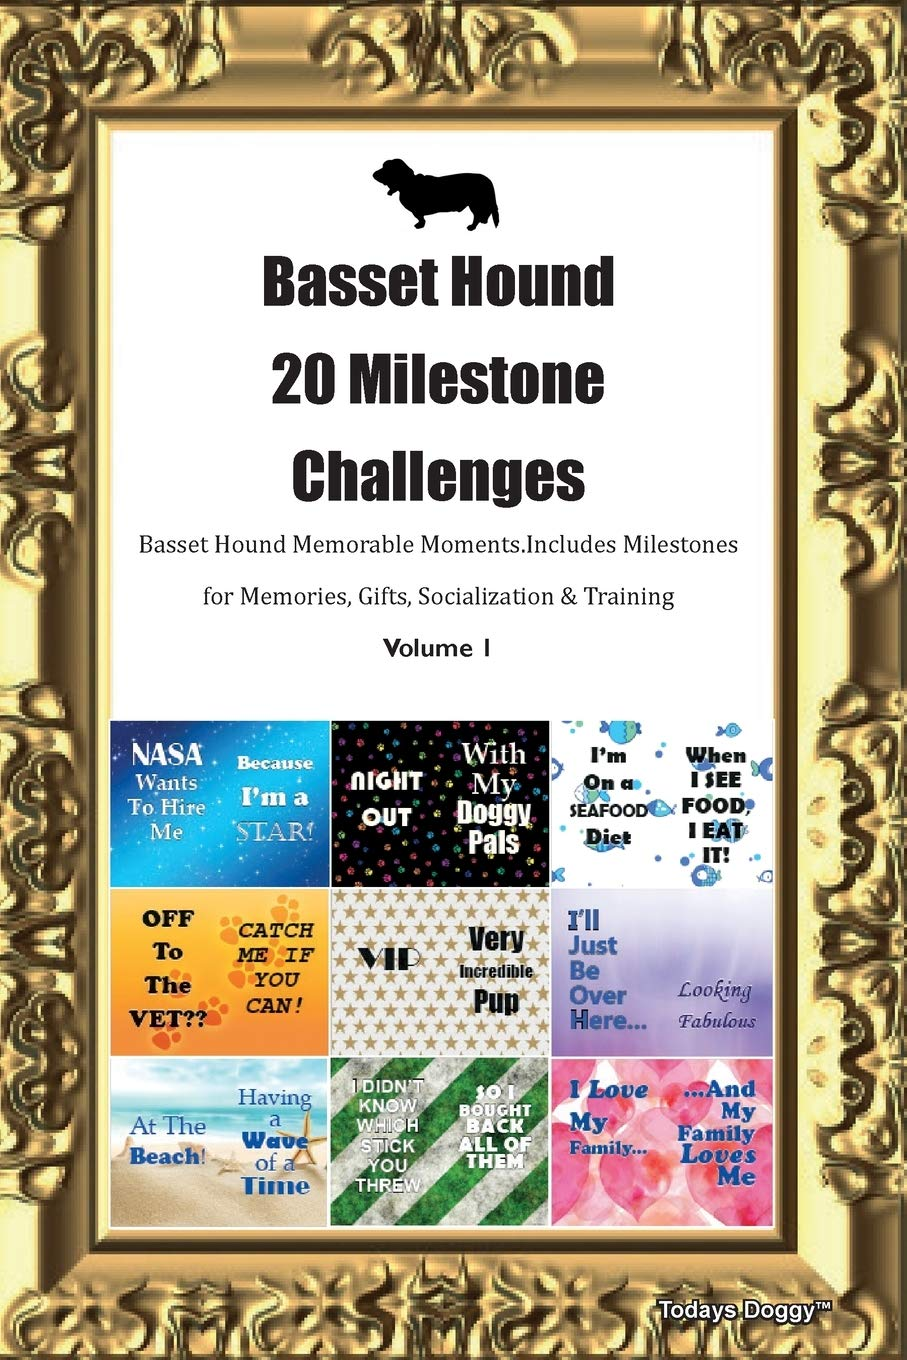 Basset Hound 20 Milestone Challenges Basset Hound Memorable Moments.Includes Milestones for Memories, Gifts, Socialization & Training Volume 1